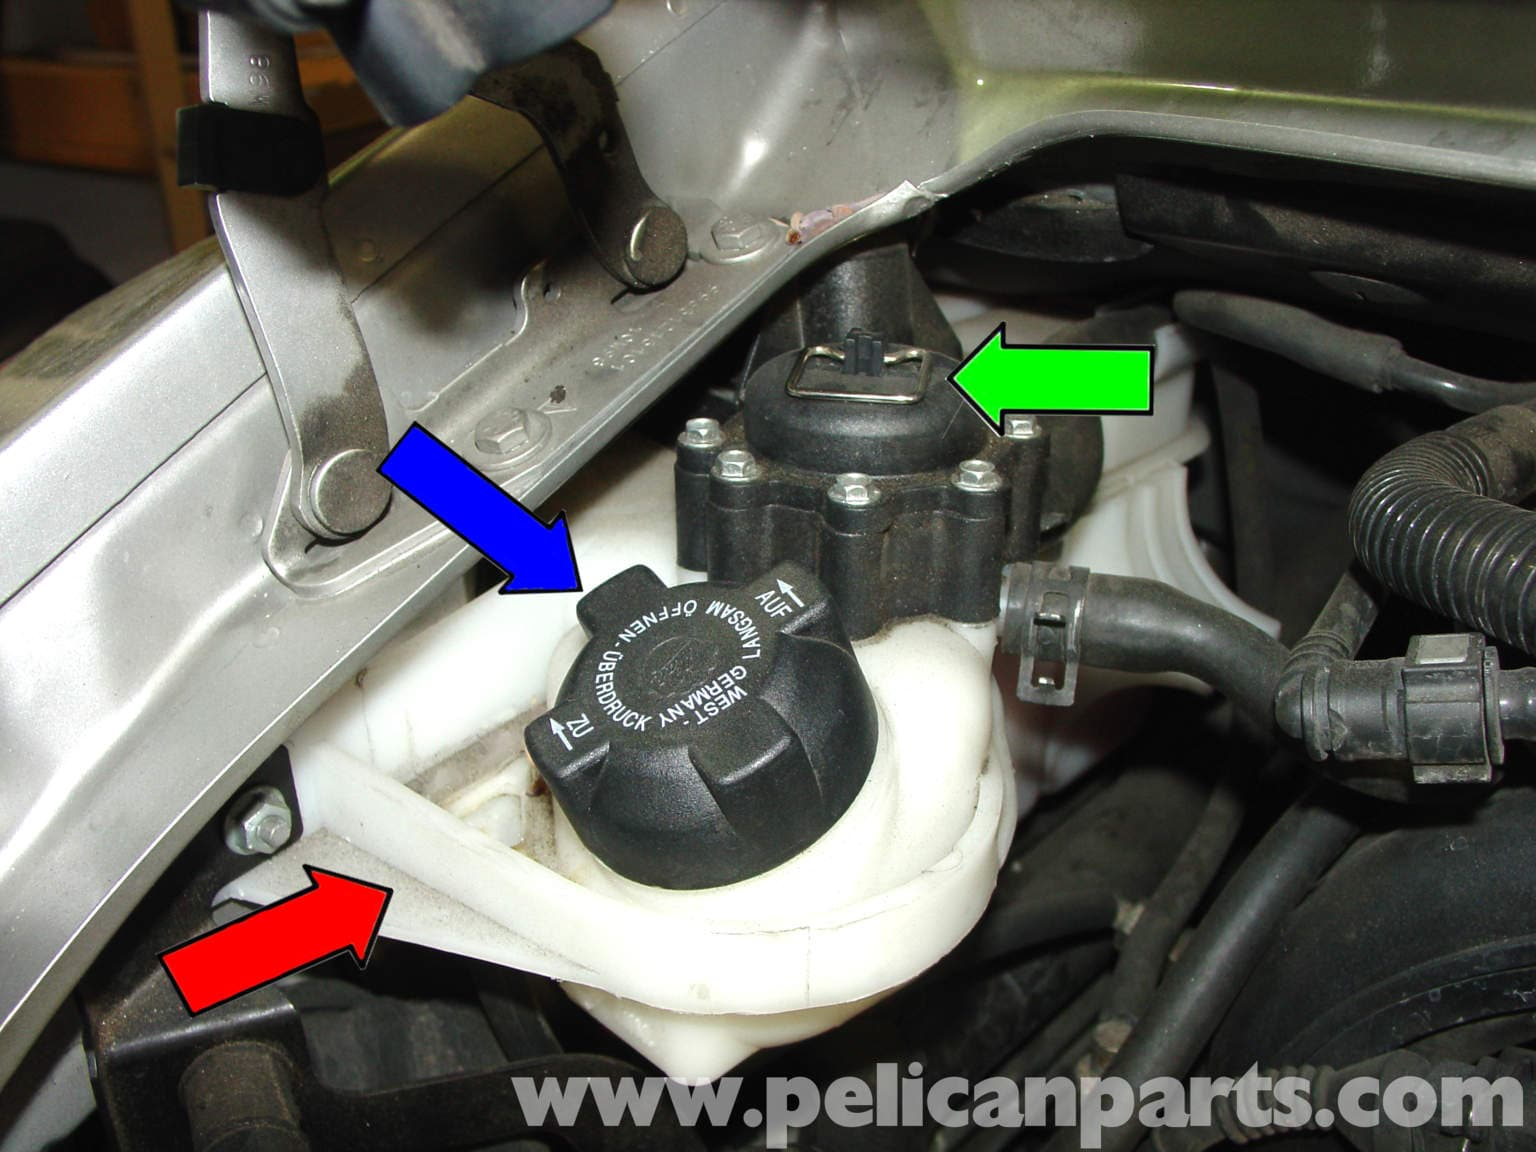 Porsche 911 Carrera Coolant Flush 996 1998 2005 997